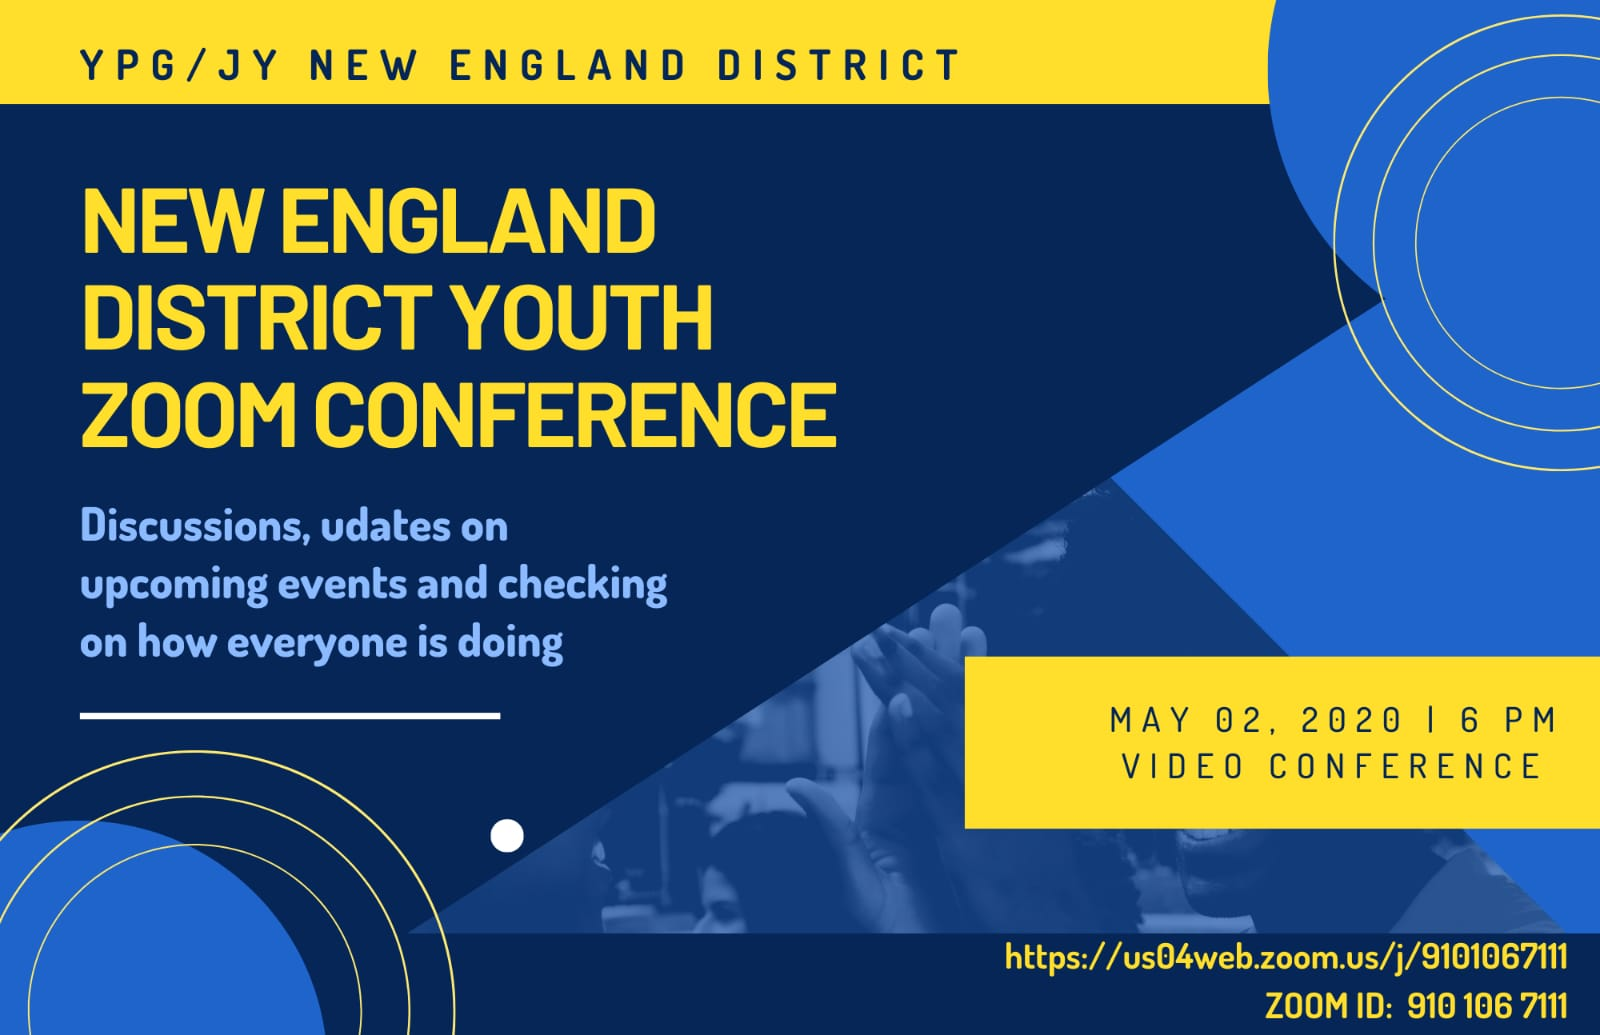 New England District Youth Zoom Conference